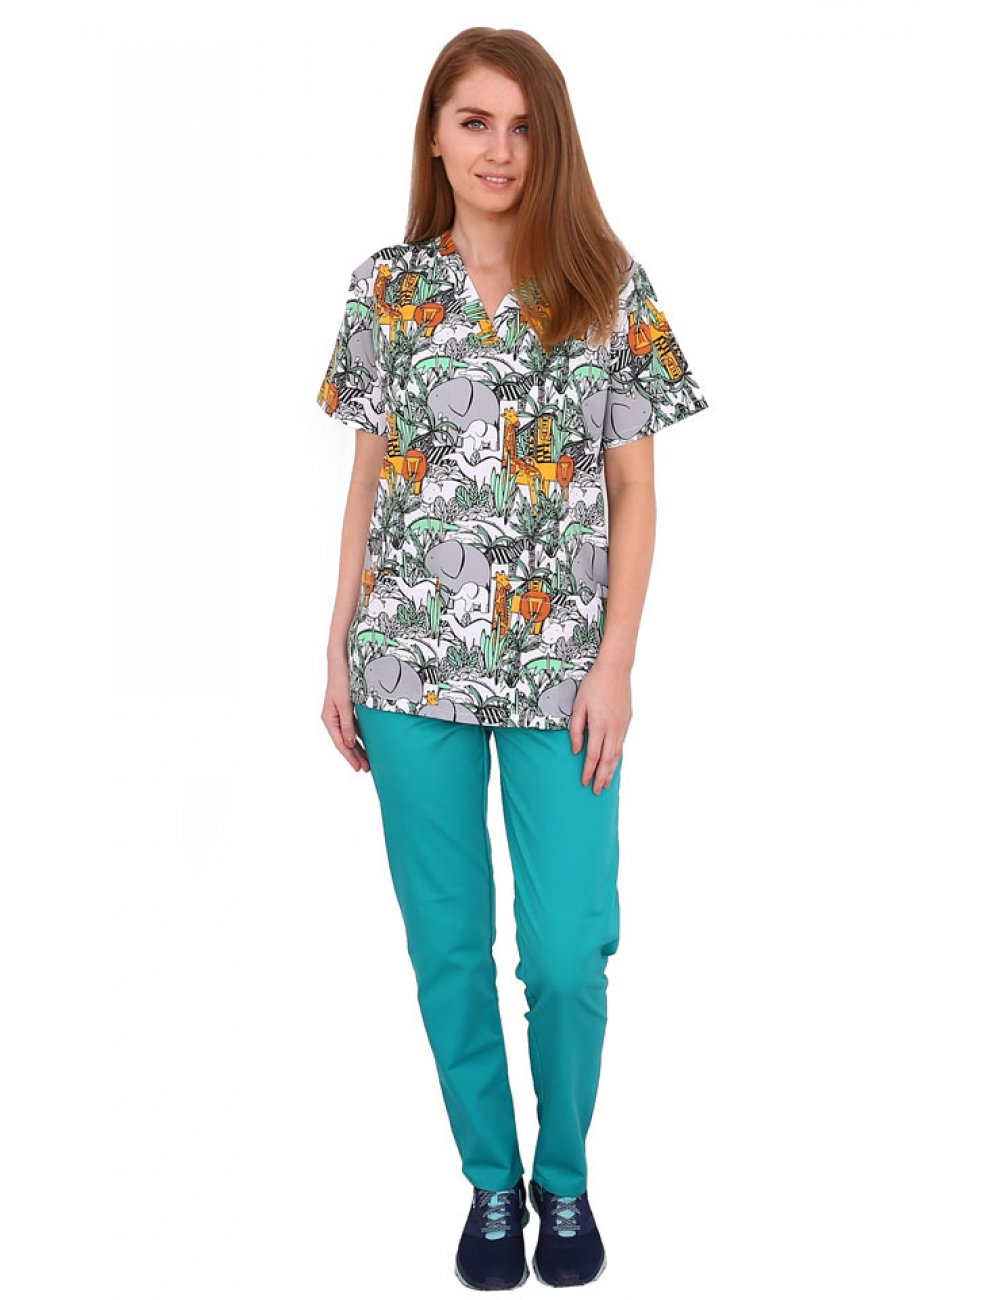 Costum medical Jungle, cu bluza cu imprimeu si pantaloni verzi cu elastic